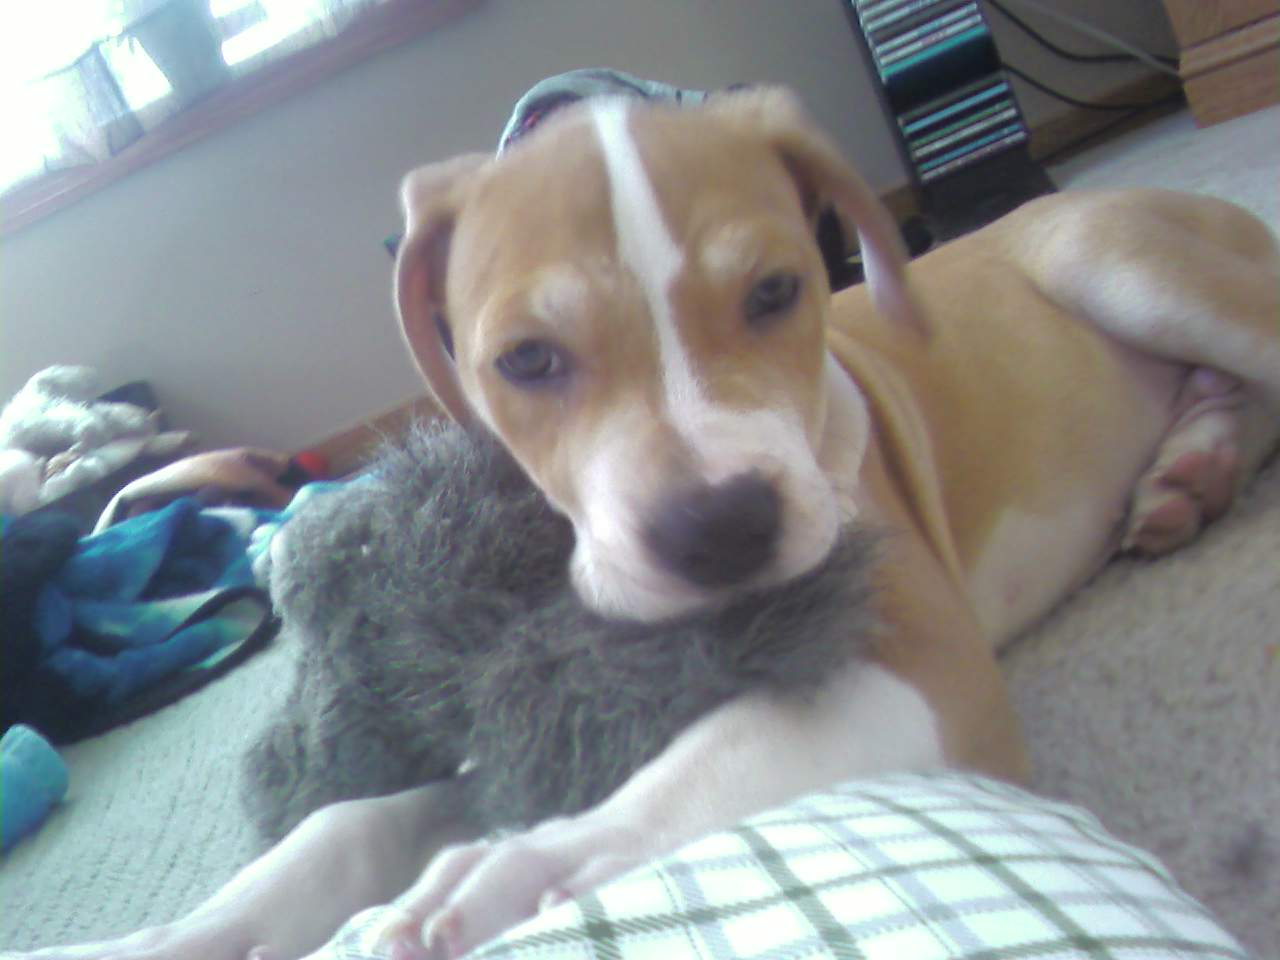 American Bulldog Mixed With Pitbull Puppies For Sale Images & Pictures ...